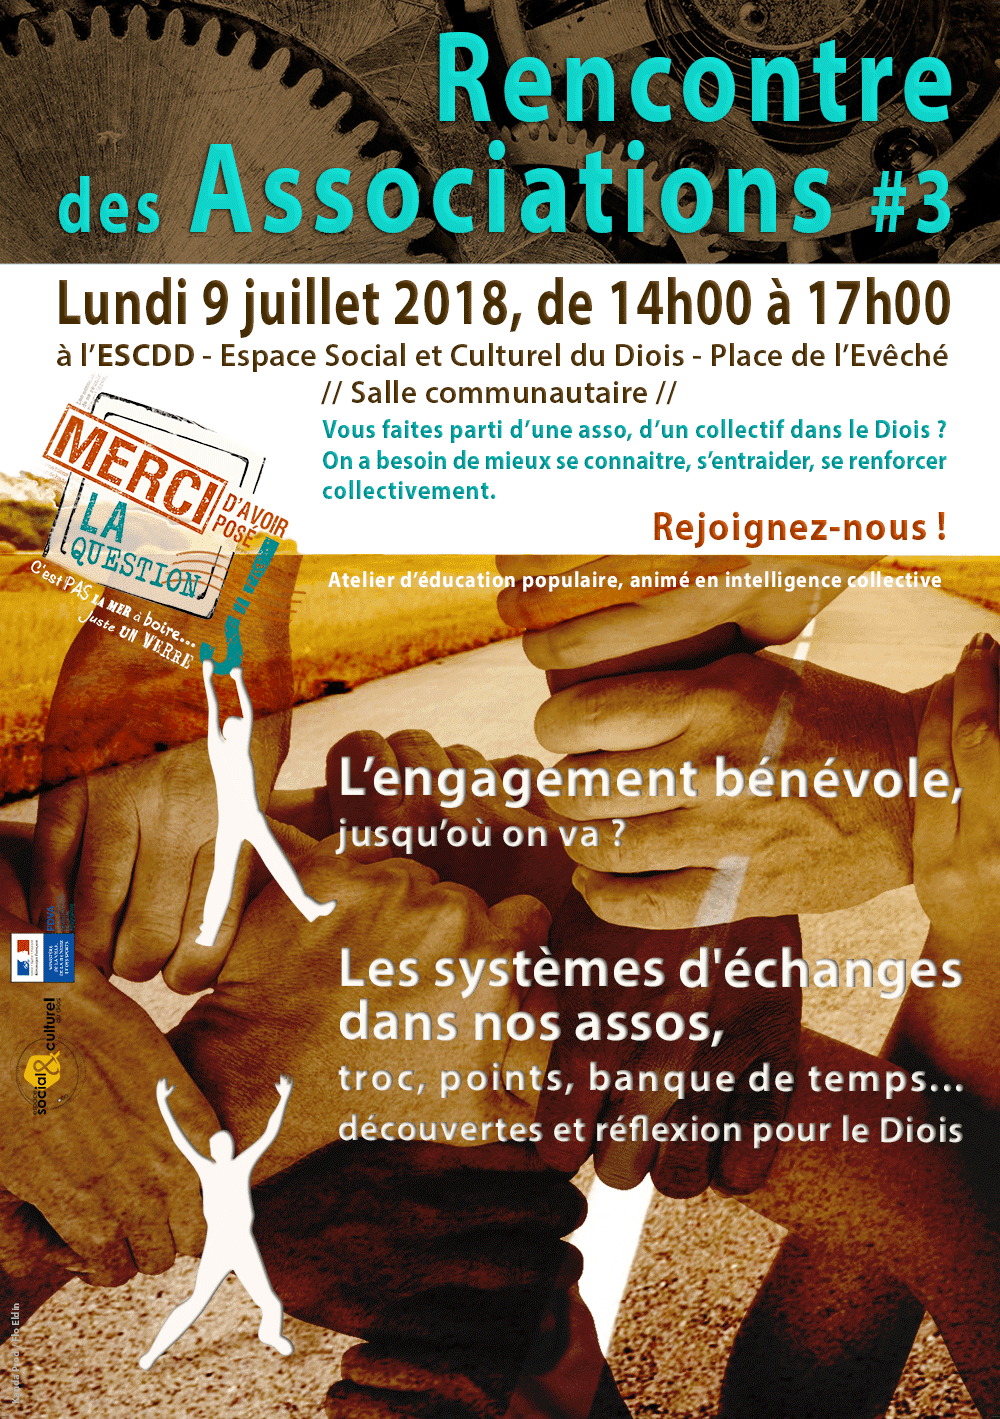 Rencontre des associations